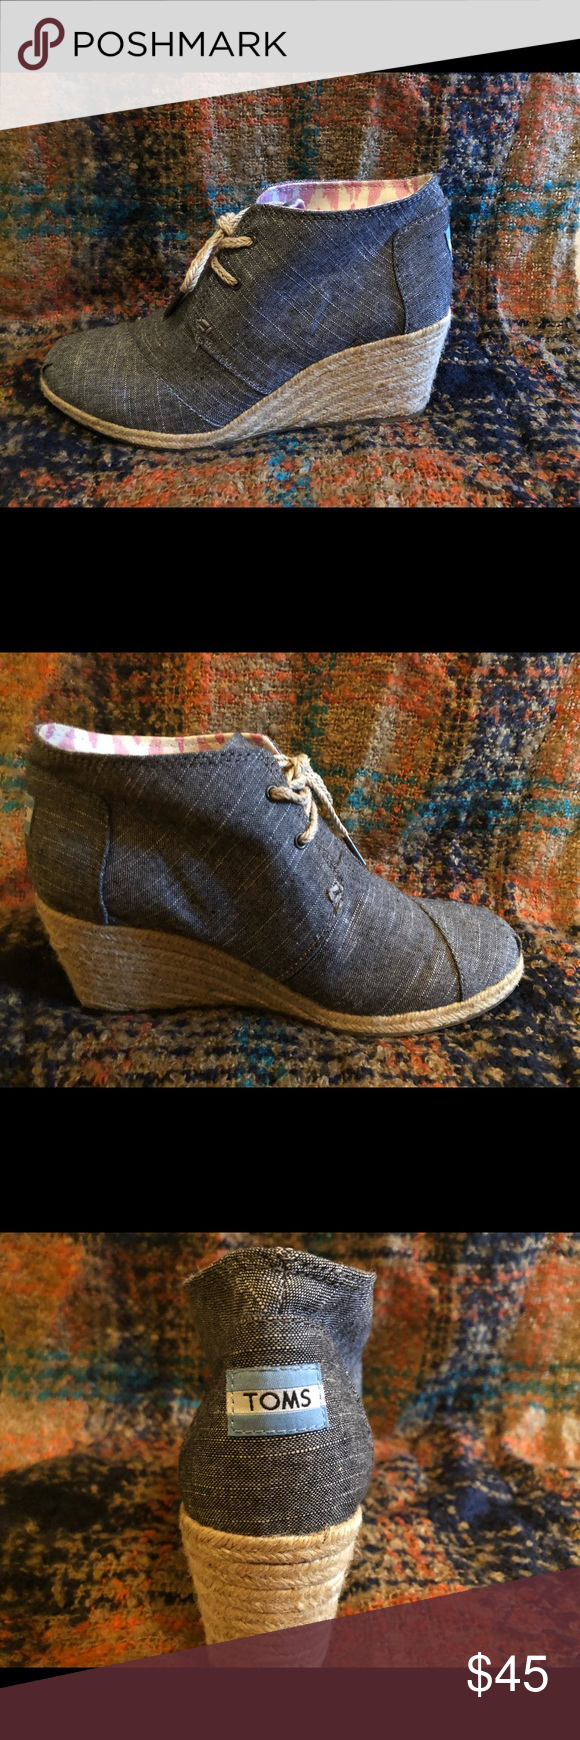 TOMS wedges Super cute TOMS wedges! Worn once - like new! Toms Shoes Ankle Boots & Booties #tomwedges TOMS wedges Super cute TOMS wedges! Worn once - like new! Toms Shoes Ankle Boots & Booties #tomwedges